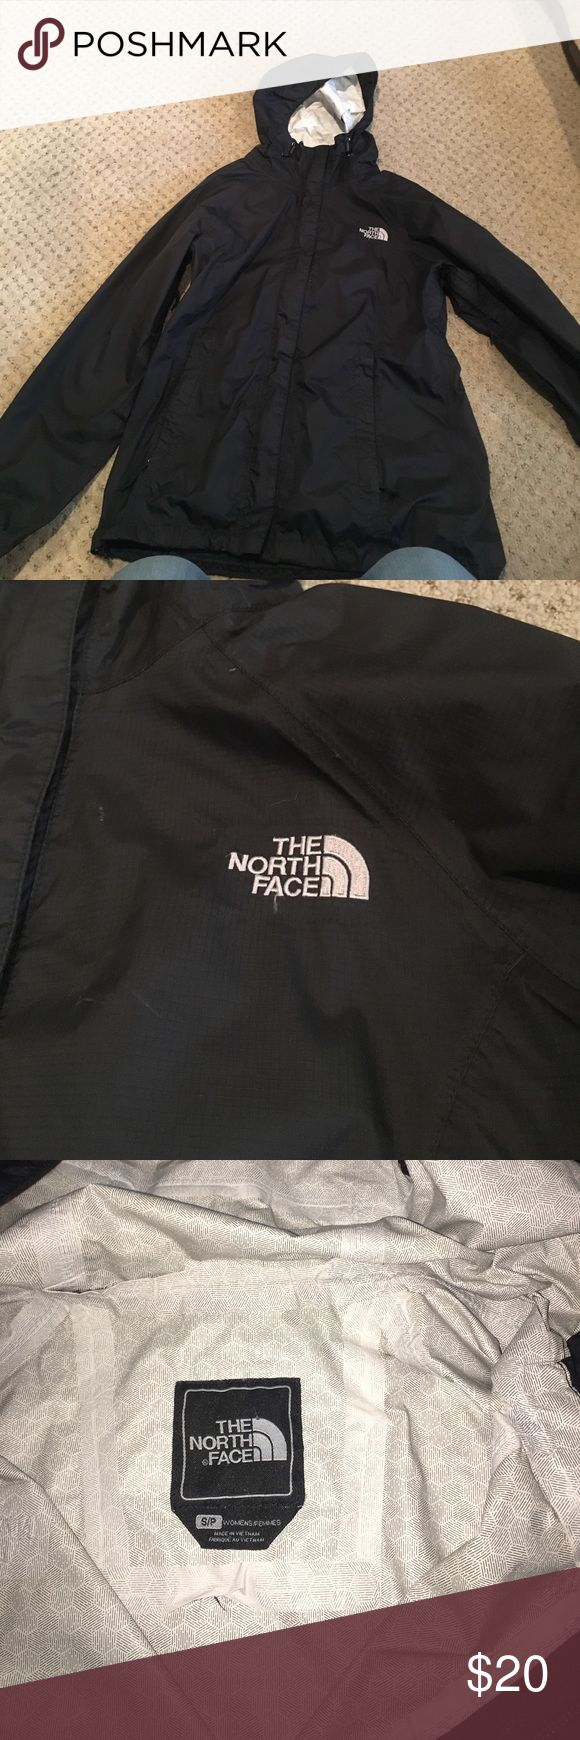 Northface windbreaker It has been worn a lot the inner liner is ripping a little bit but still have a lot of life in it North Face Jackets & Coats